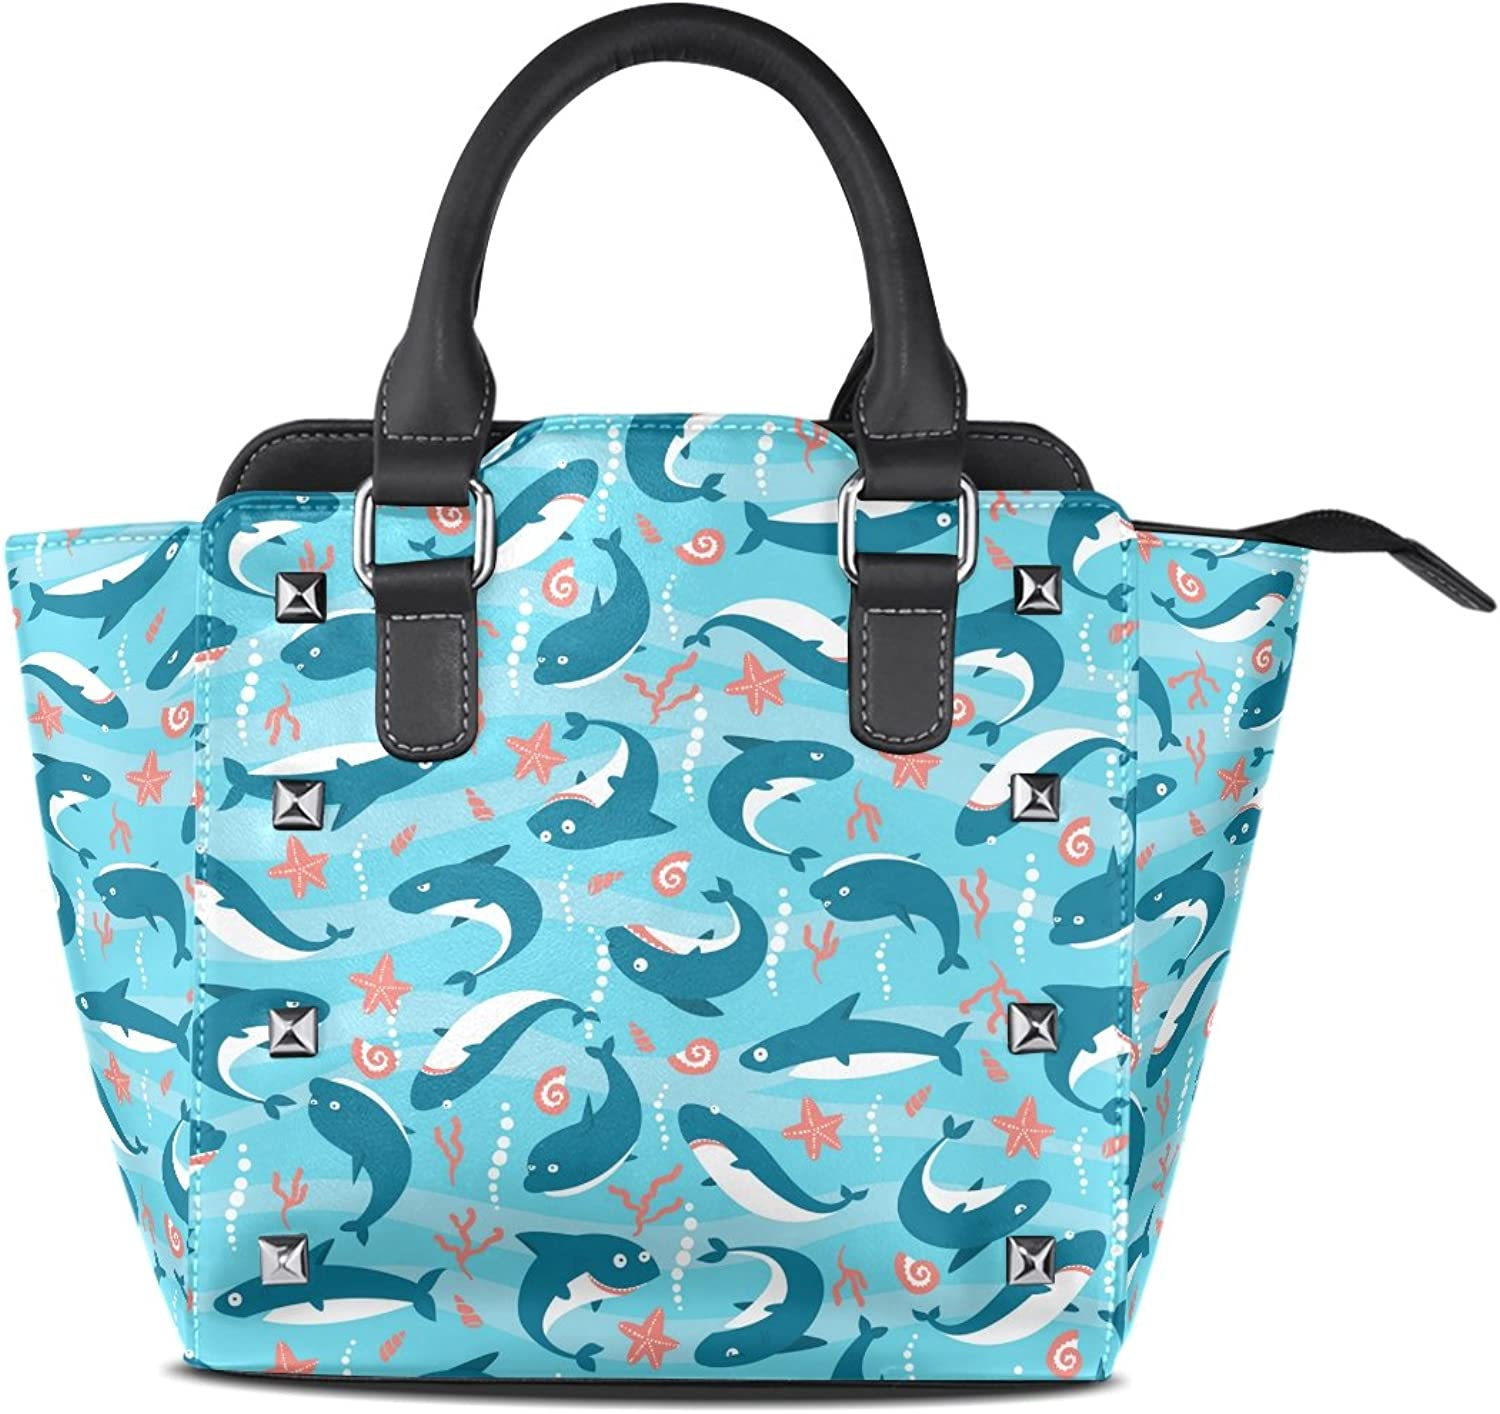 My Little Nest Women's Top Handle Satchel Handbag Cute Sharks Ladies PU Leather Shoulder Bag Crossbody Bag